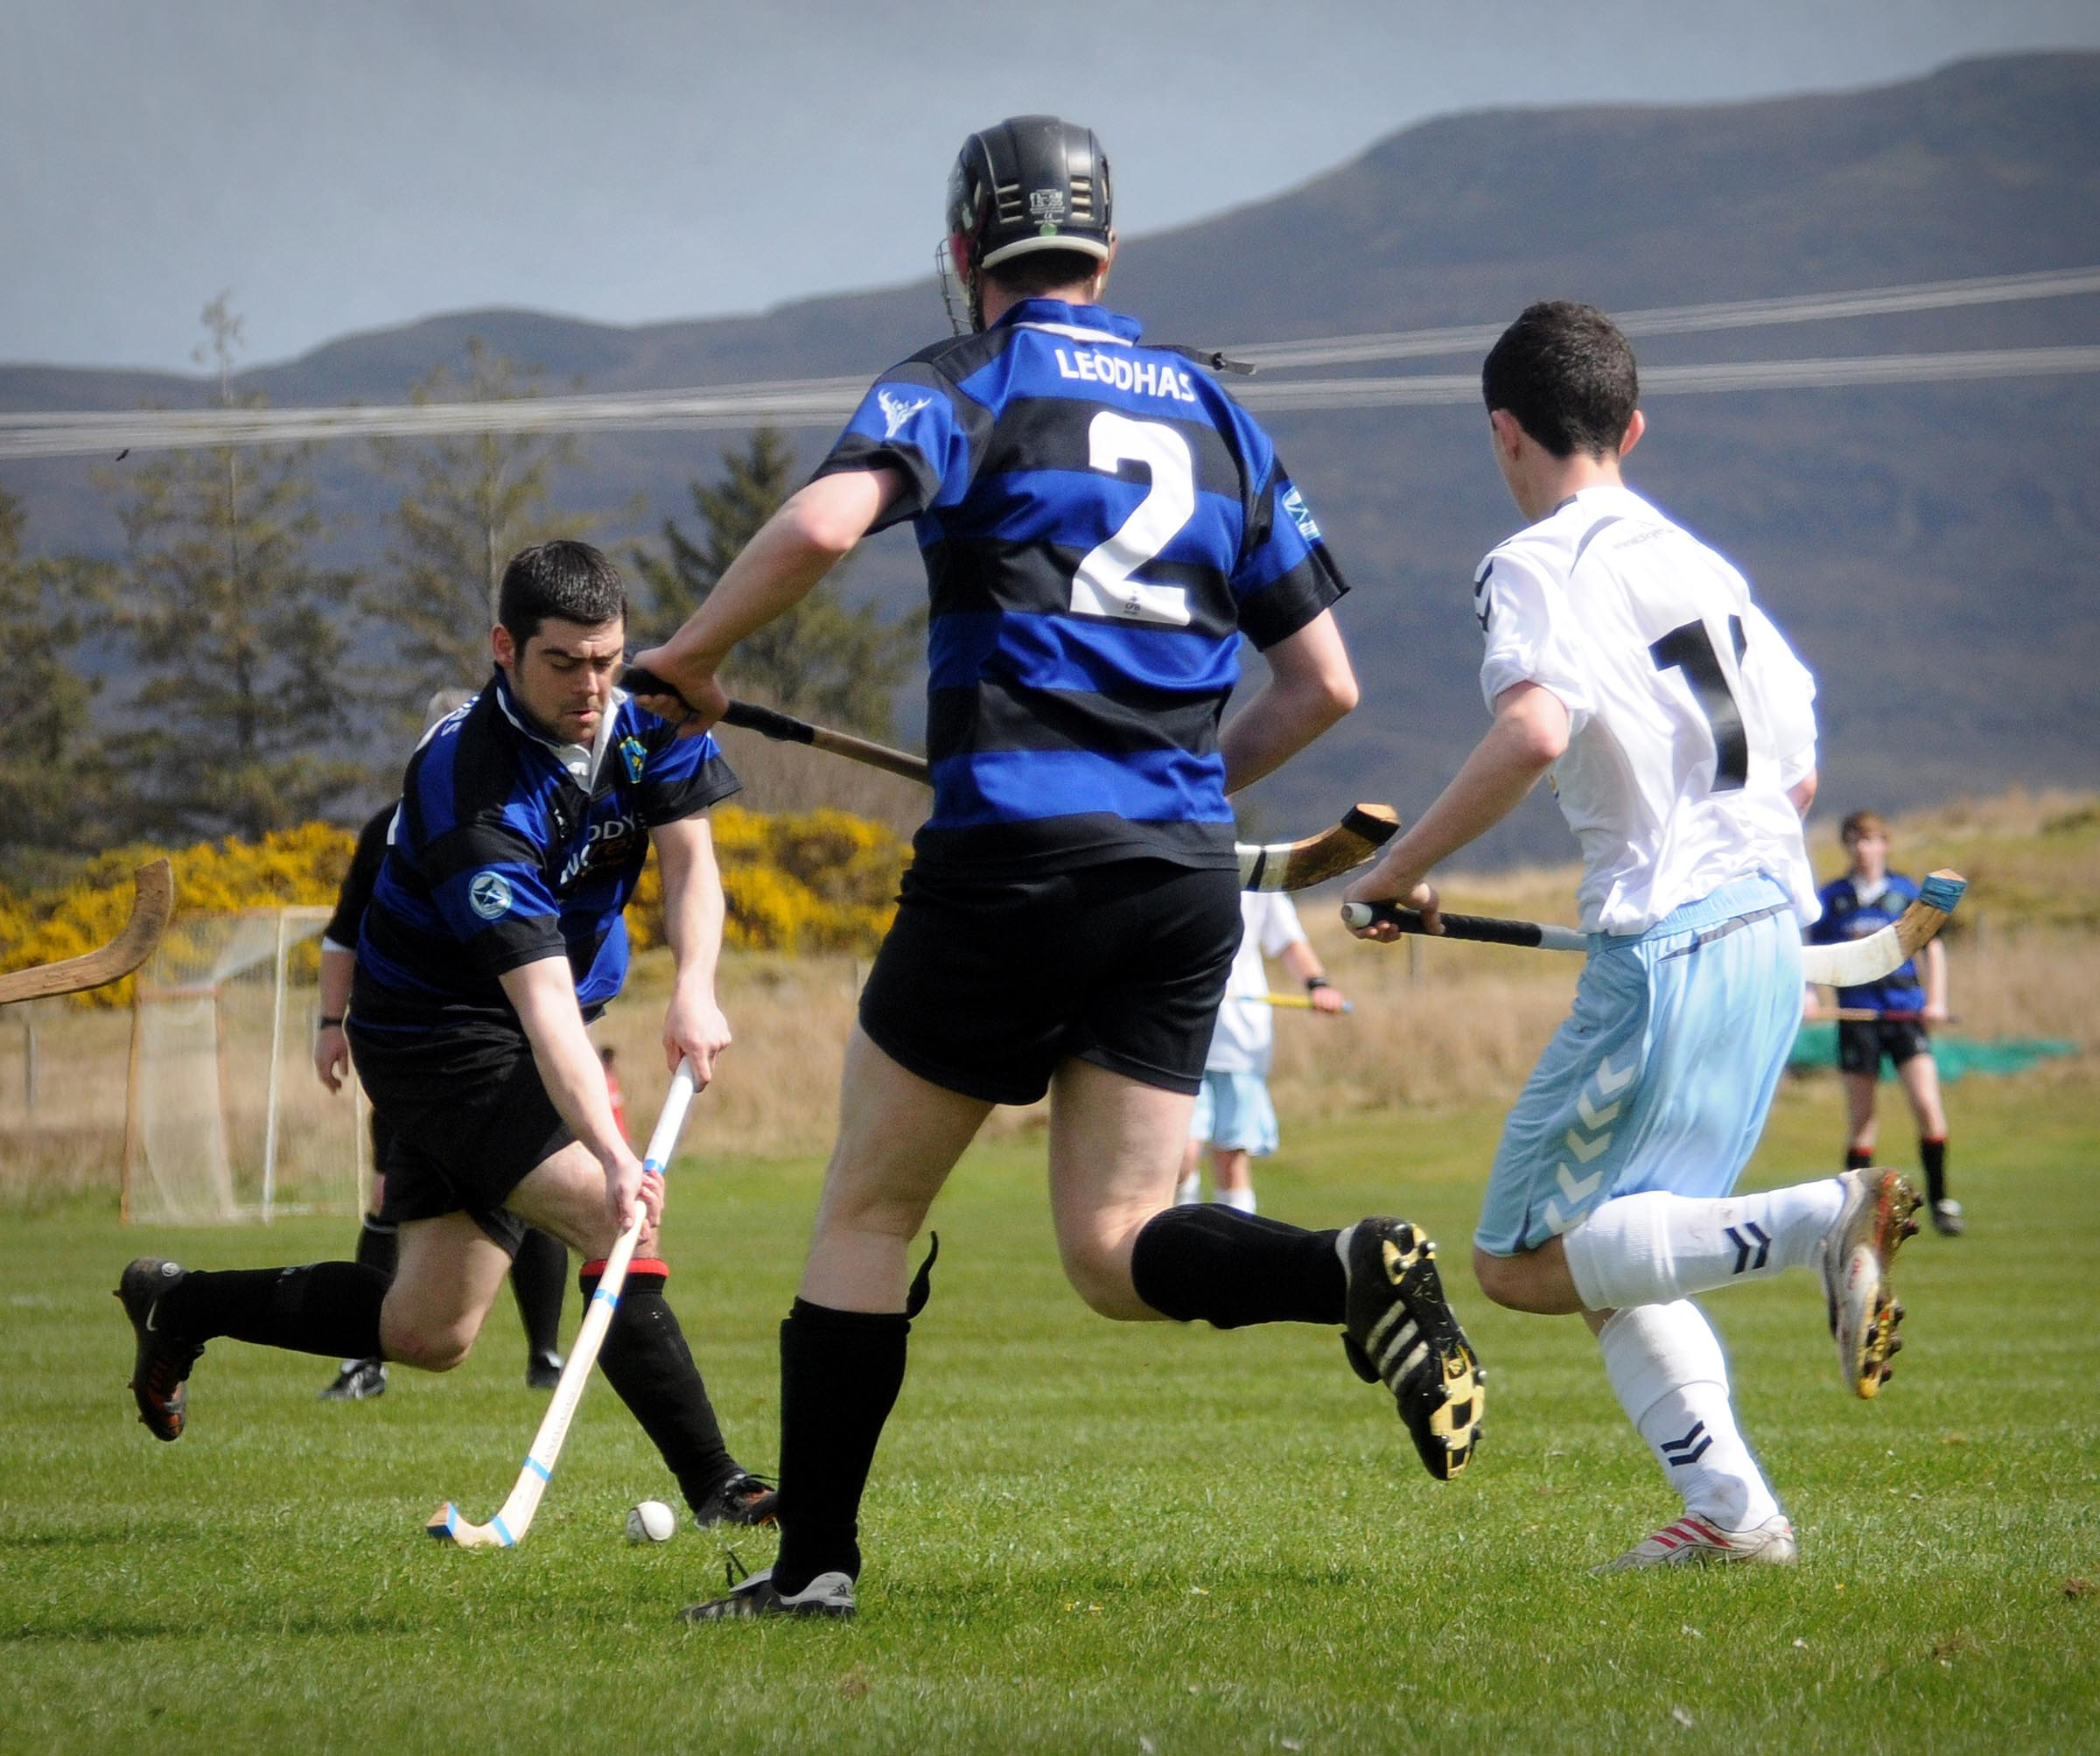 Lewis captain on the ball against Skye